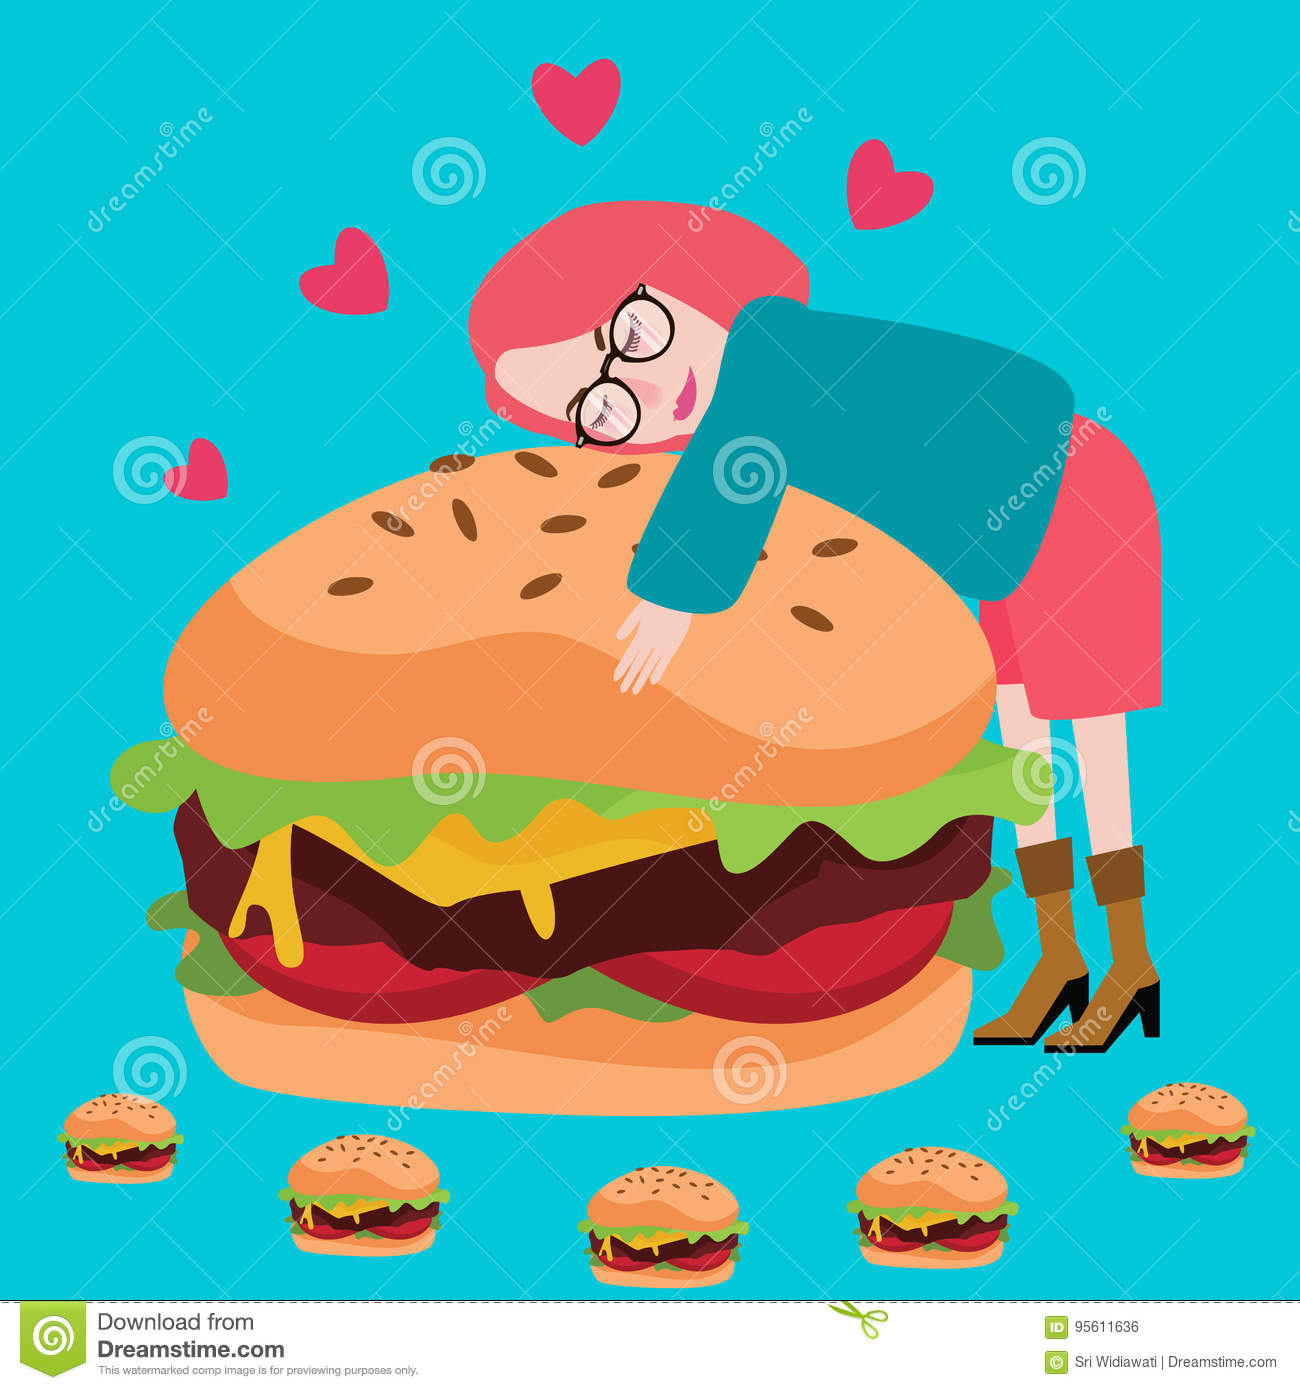 Love burger junknfood lover delicious meat tasty